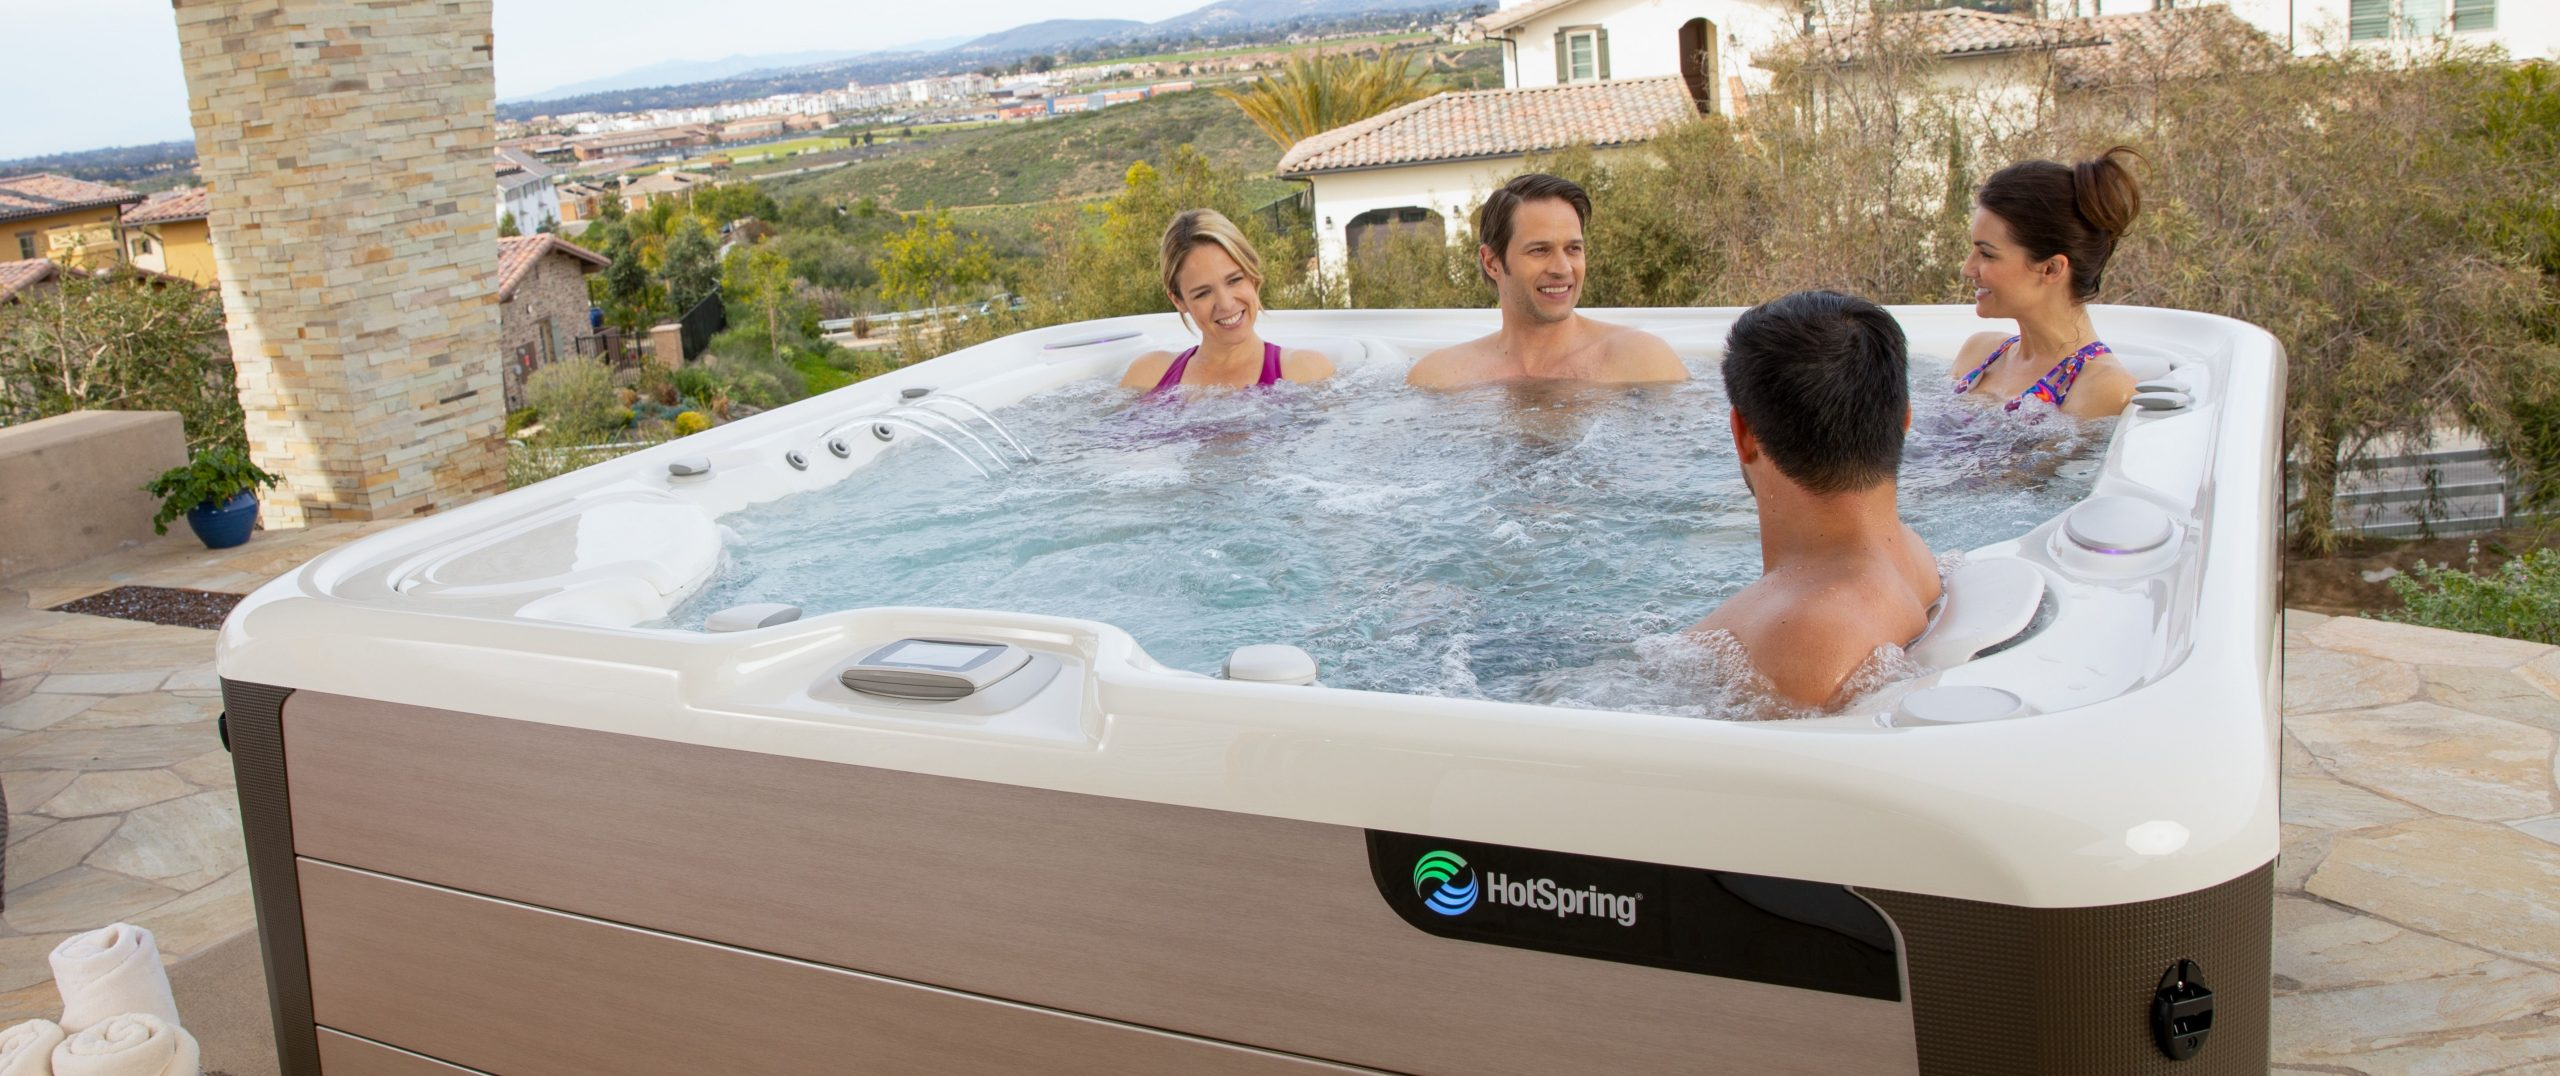 Turn Your Hot Tub Into a Cooling Tub This Summer!